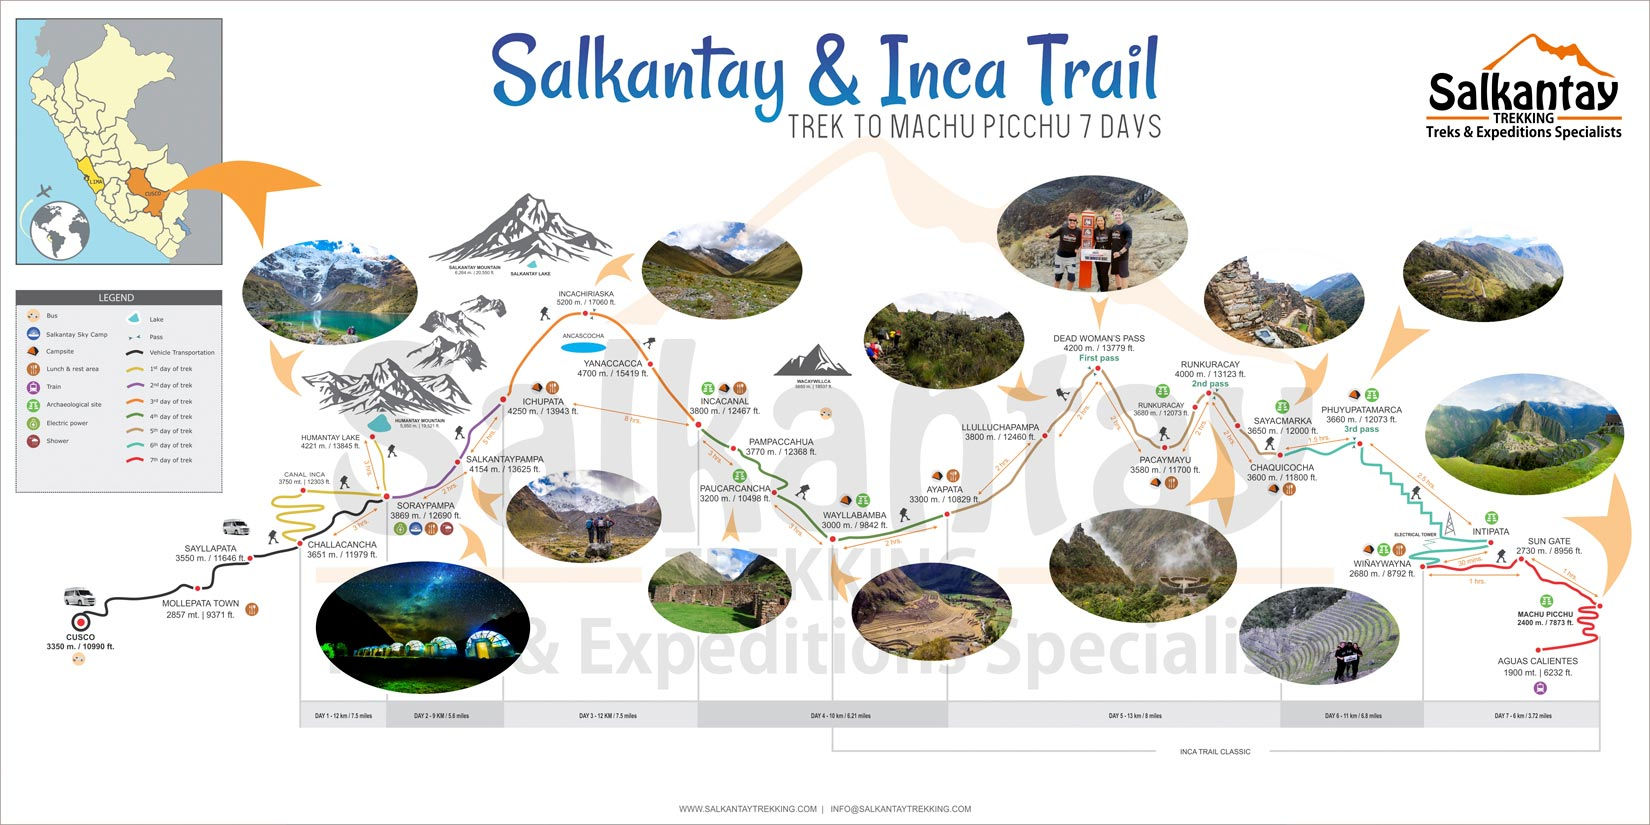 Salkantay Trek and Inca Trail map and itinerary